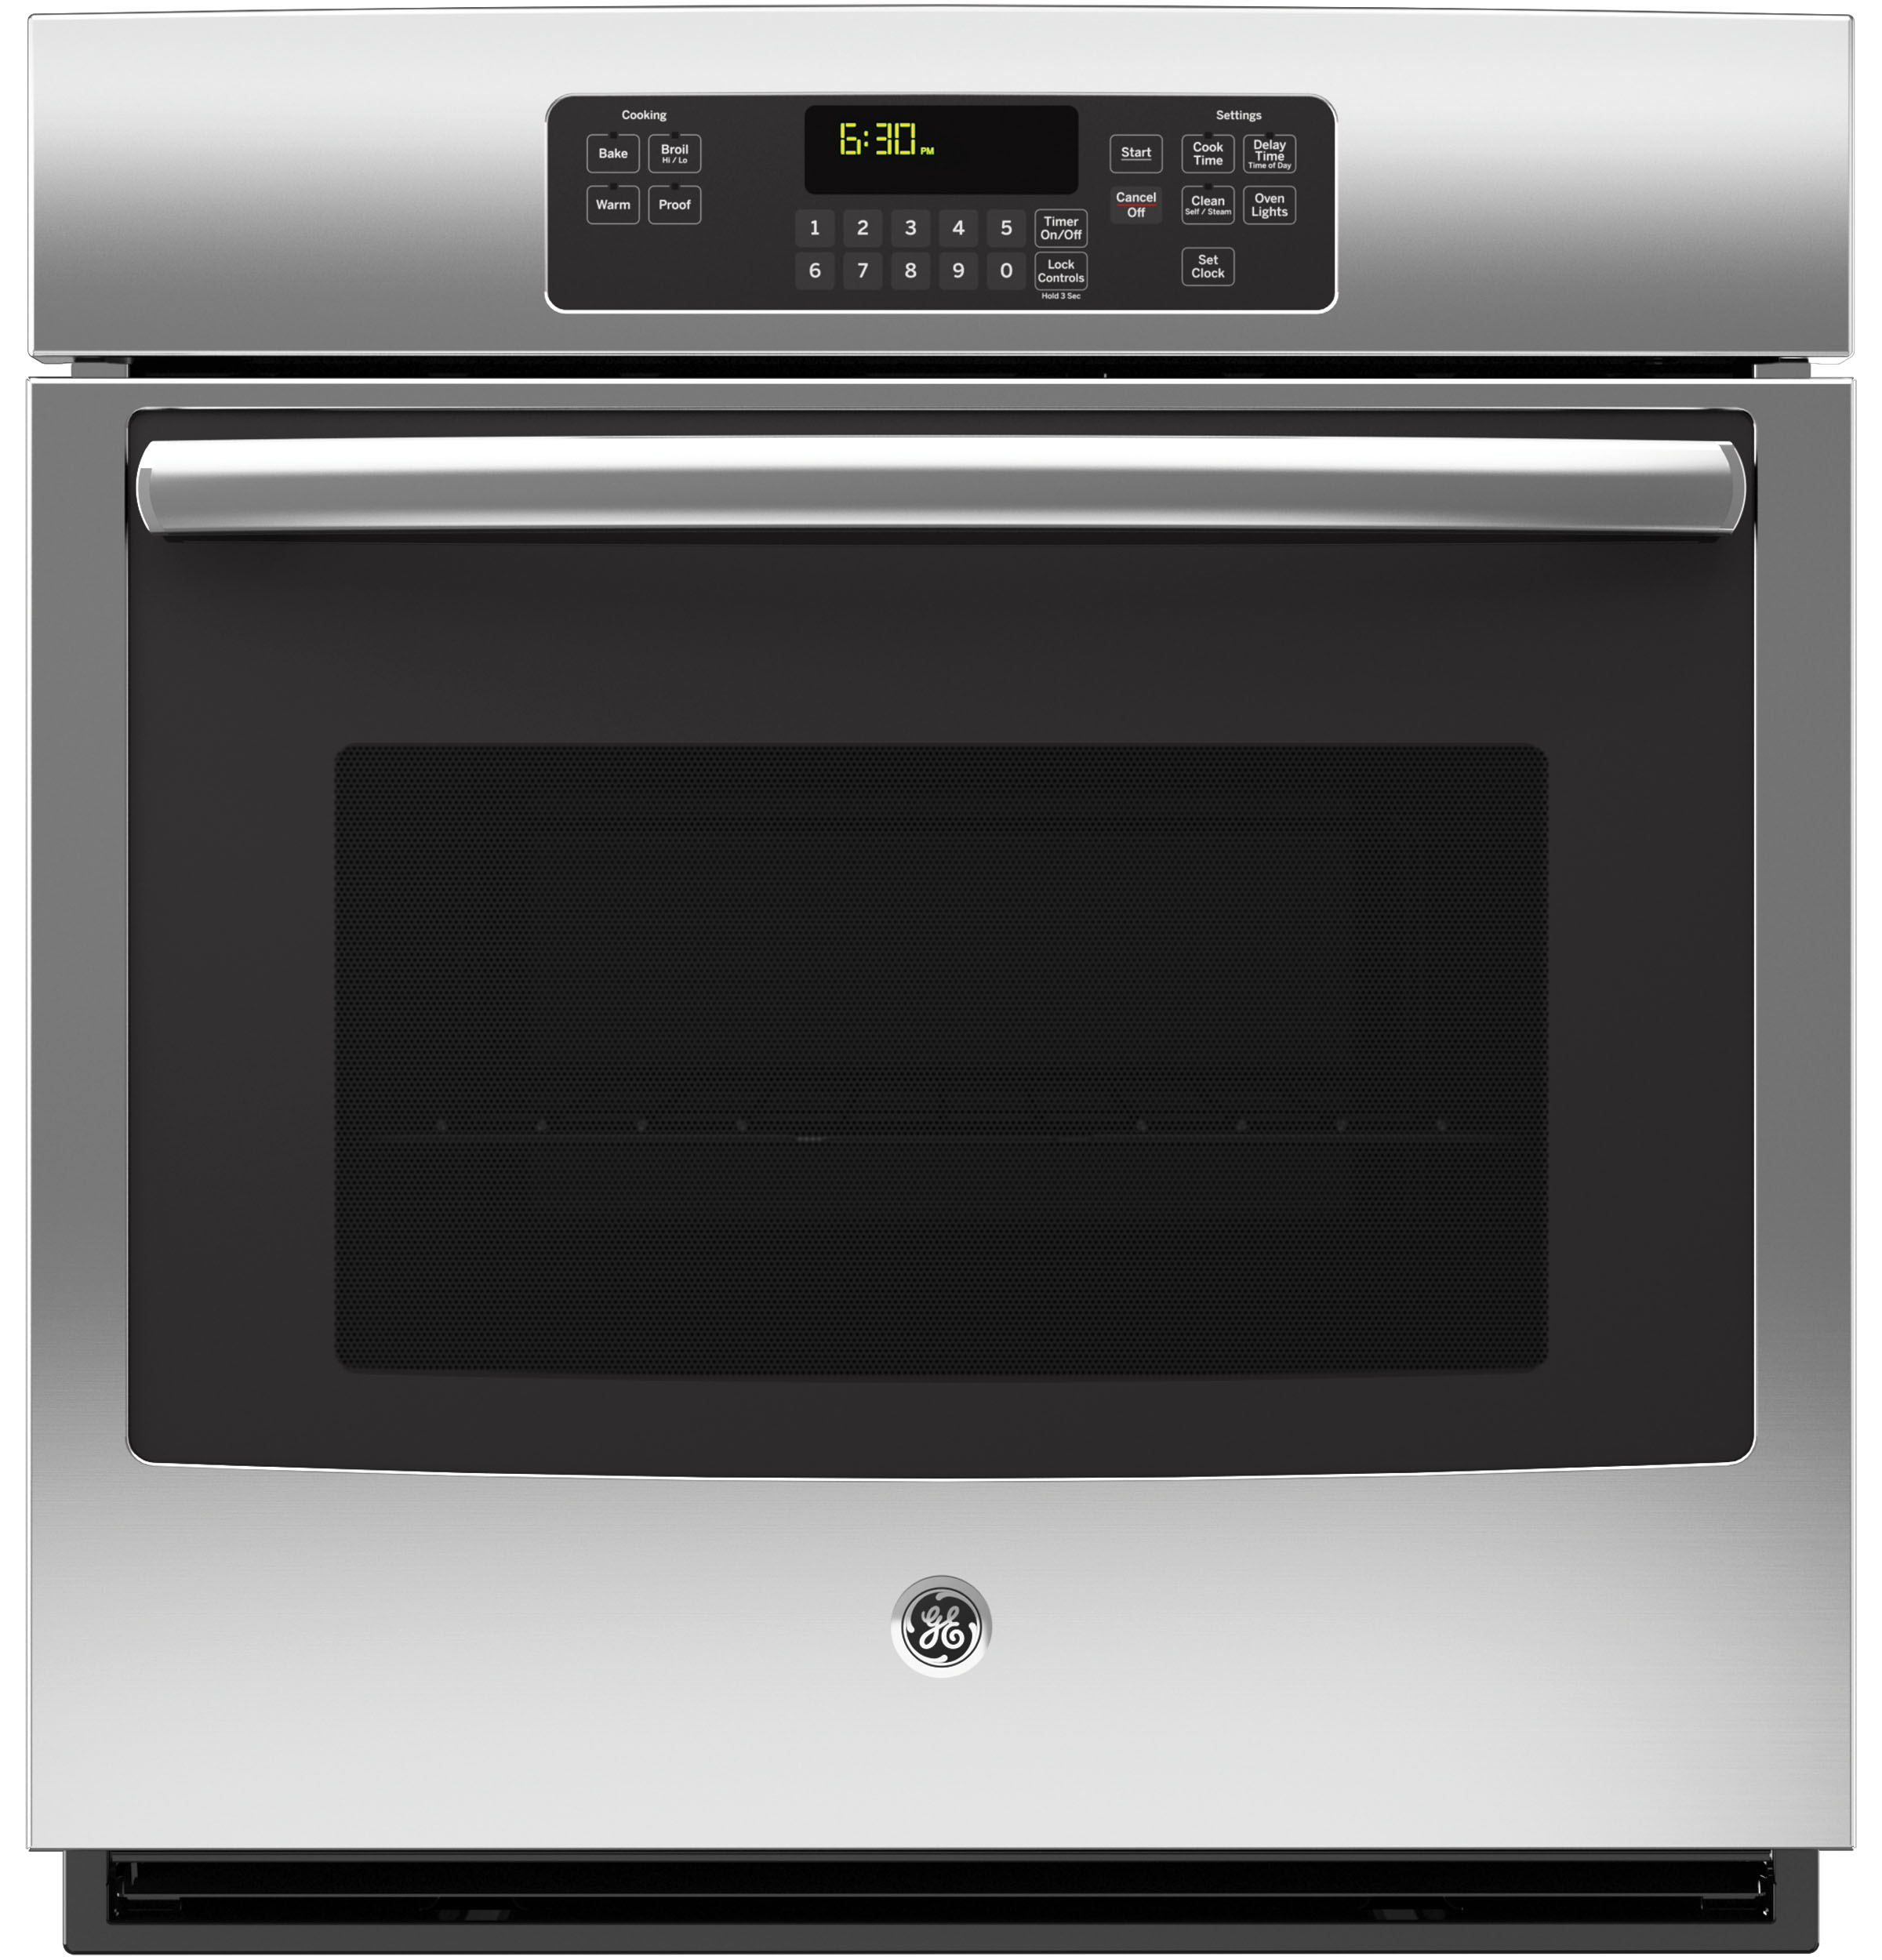 Ge 27 Built In Single Wall Oven Jk3000sfss Appliances House Wiring To A Product Image